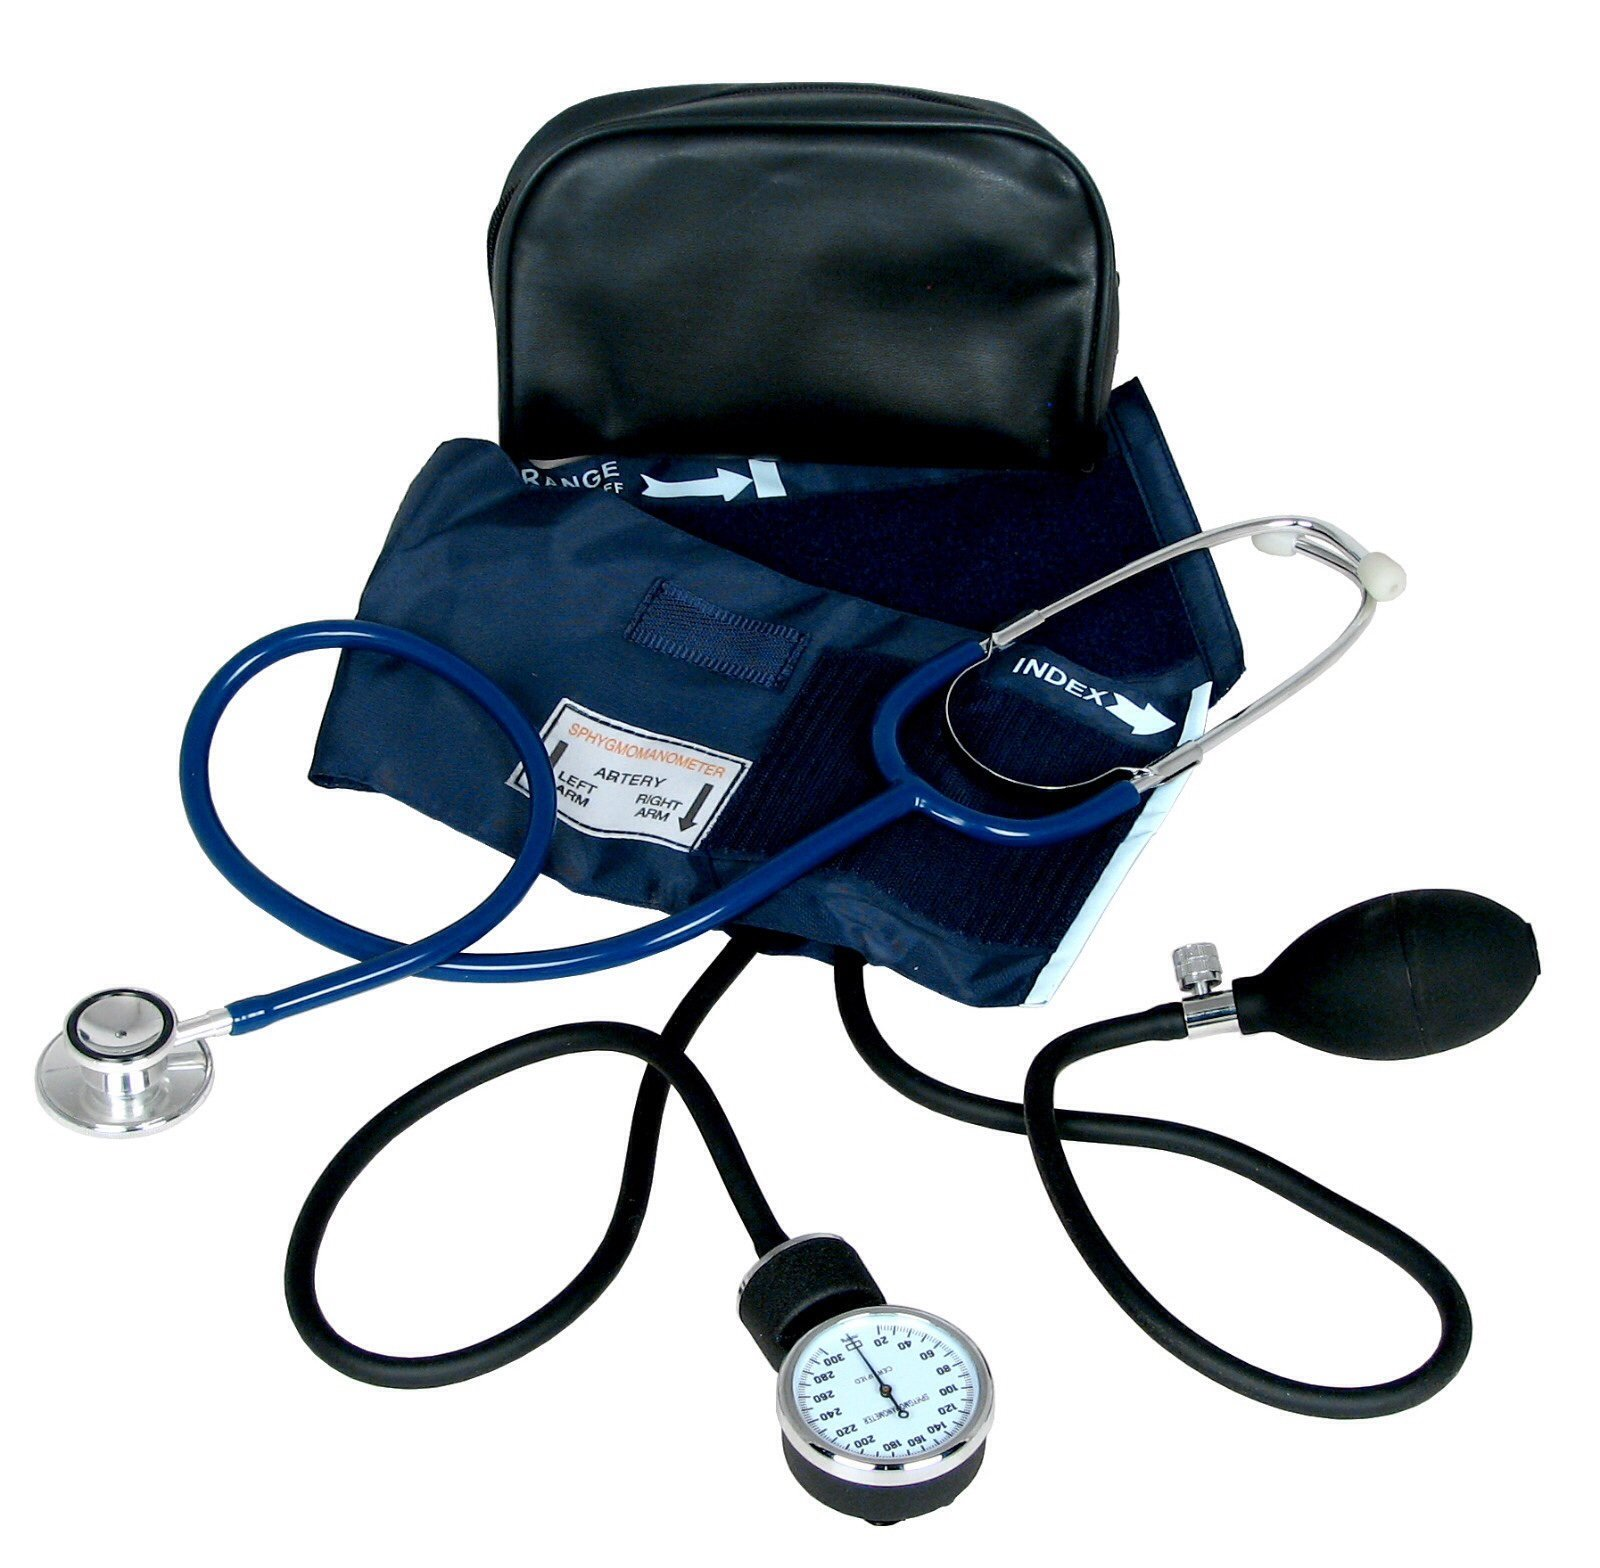 Dixie Ems Blood Pressure Cuff With Dual Head Stethoscope Kit by Dixie Ems